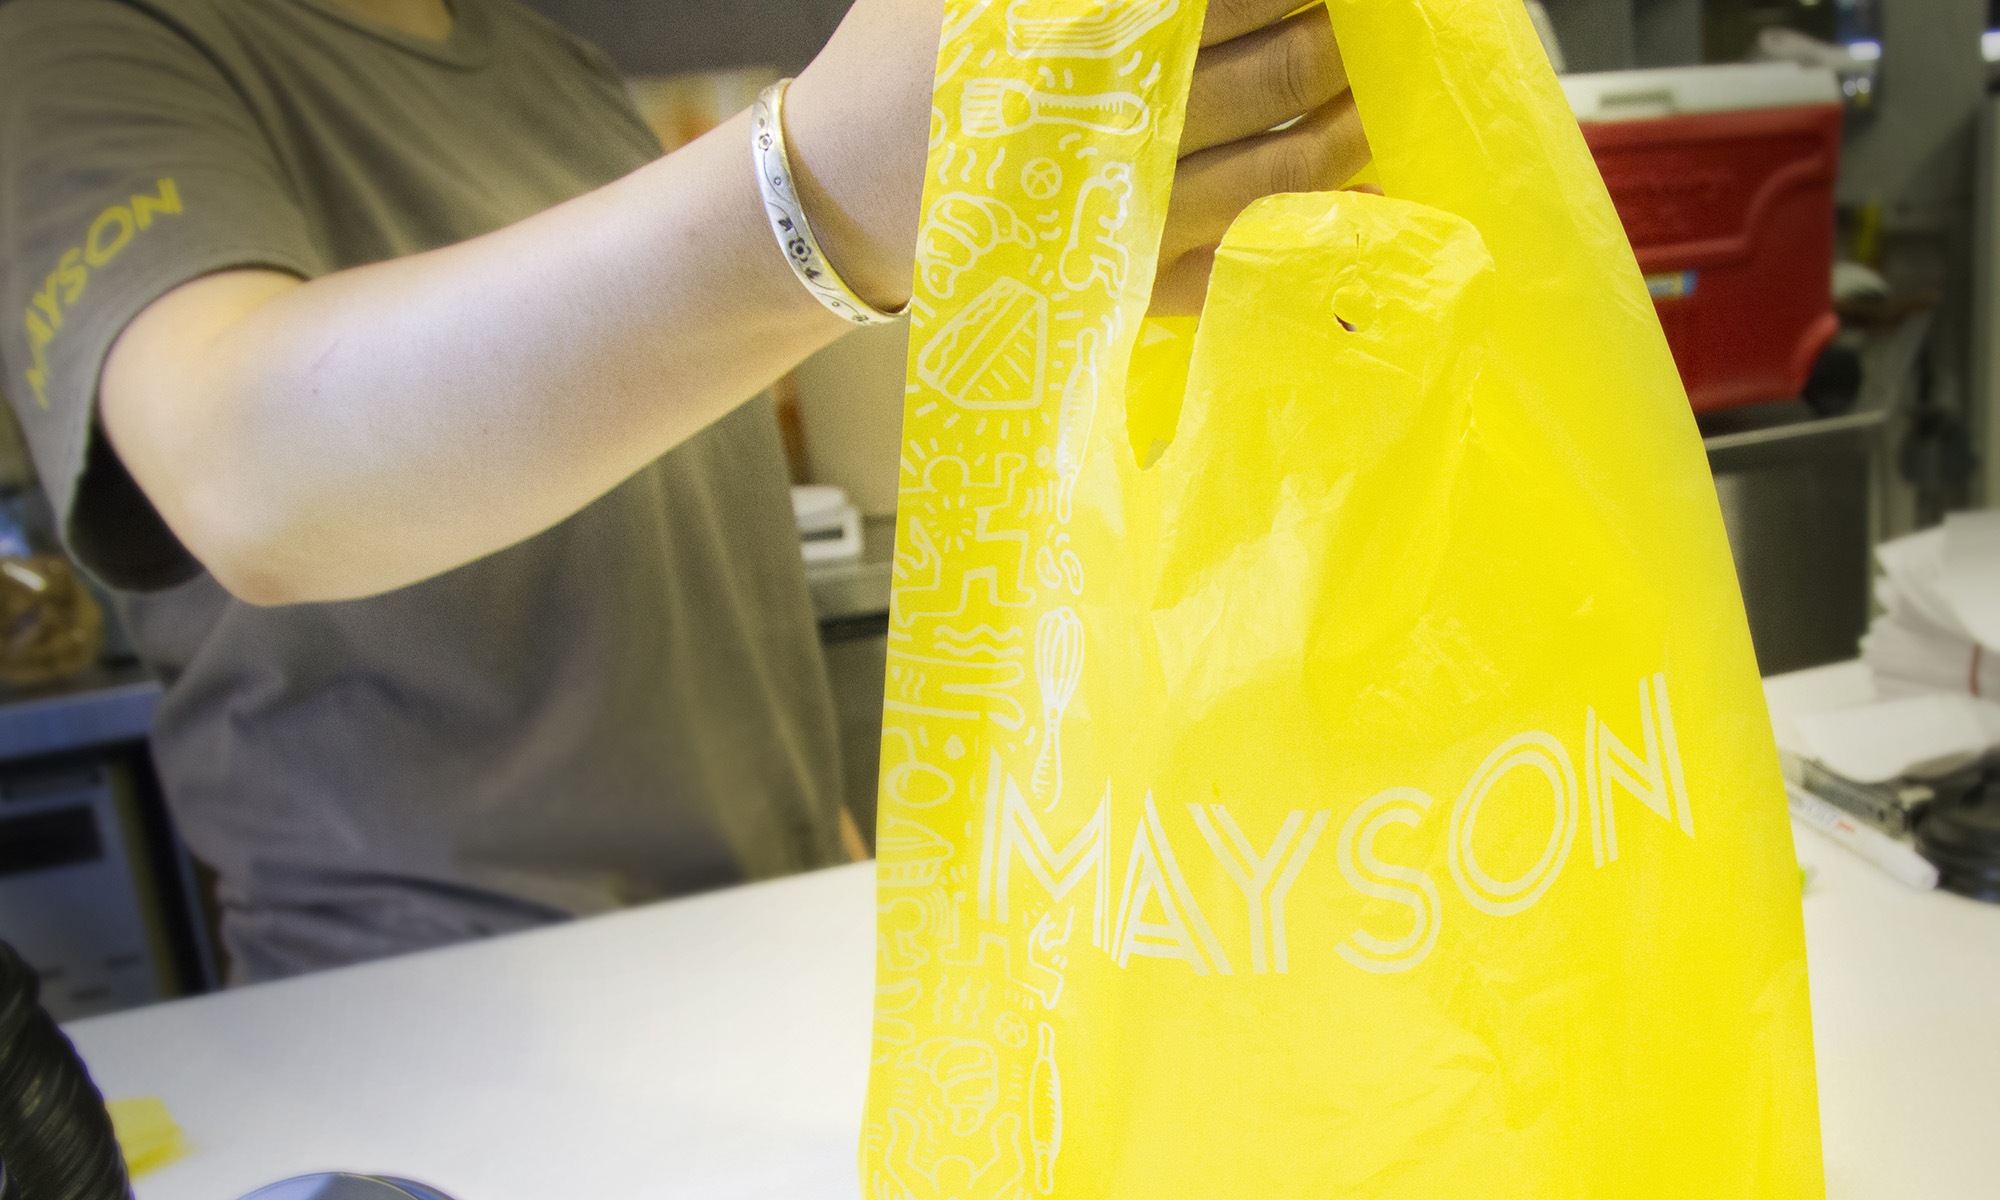 Mayson-bakery-singapore-plasticbag-design